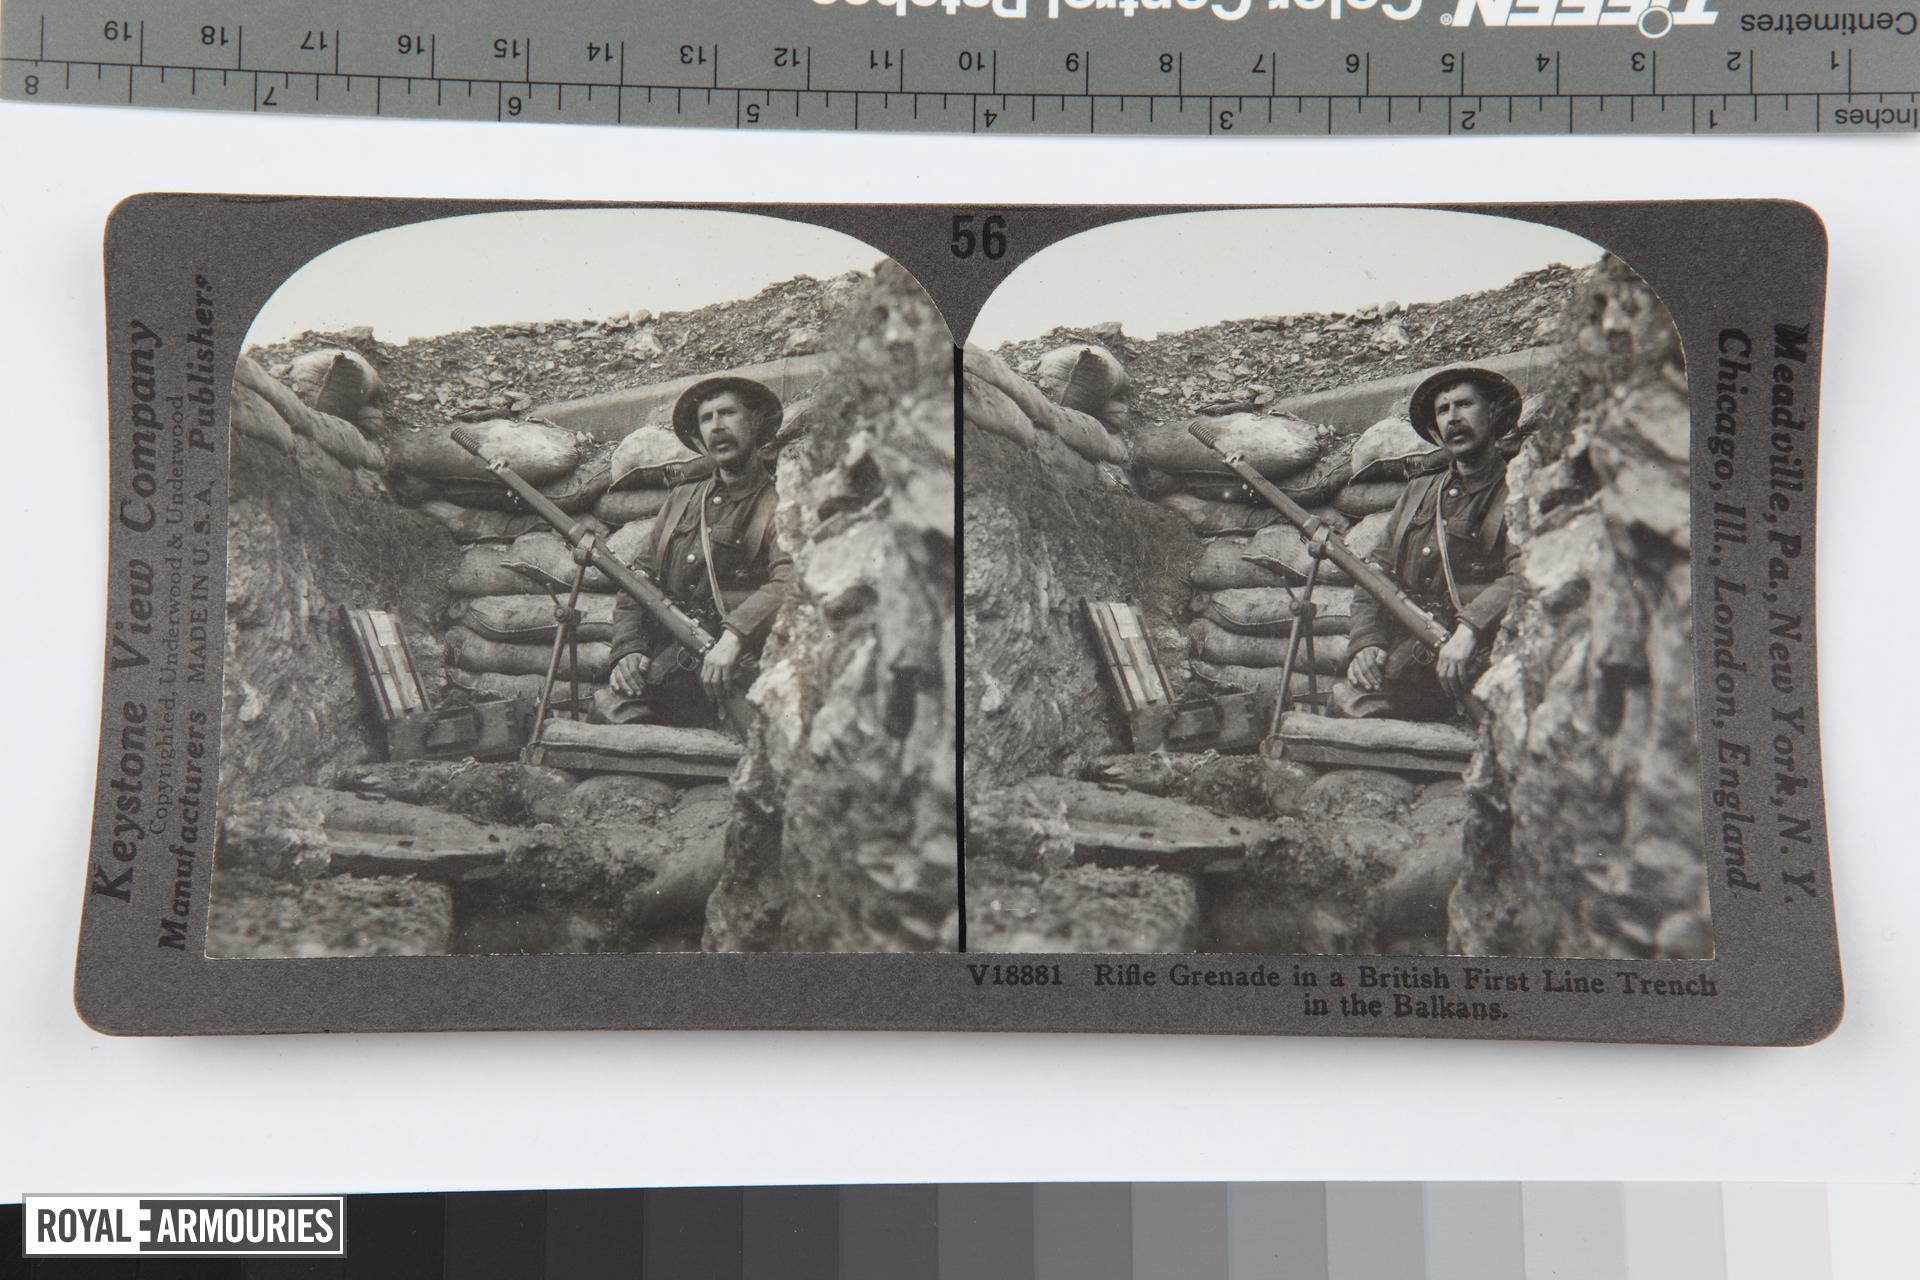 Stereoscopic photograph entitled '56. Rifle Grenade in a British First Line Trench in the Balkans', American, 1914-1919 (RAR.0987 56)